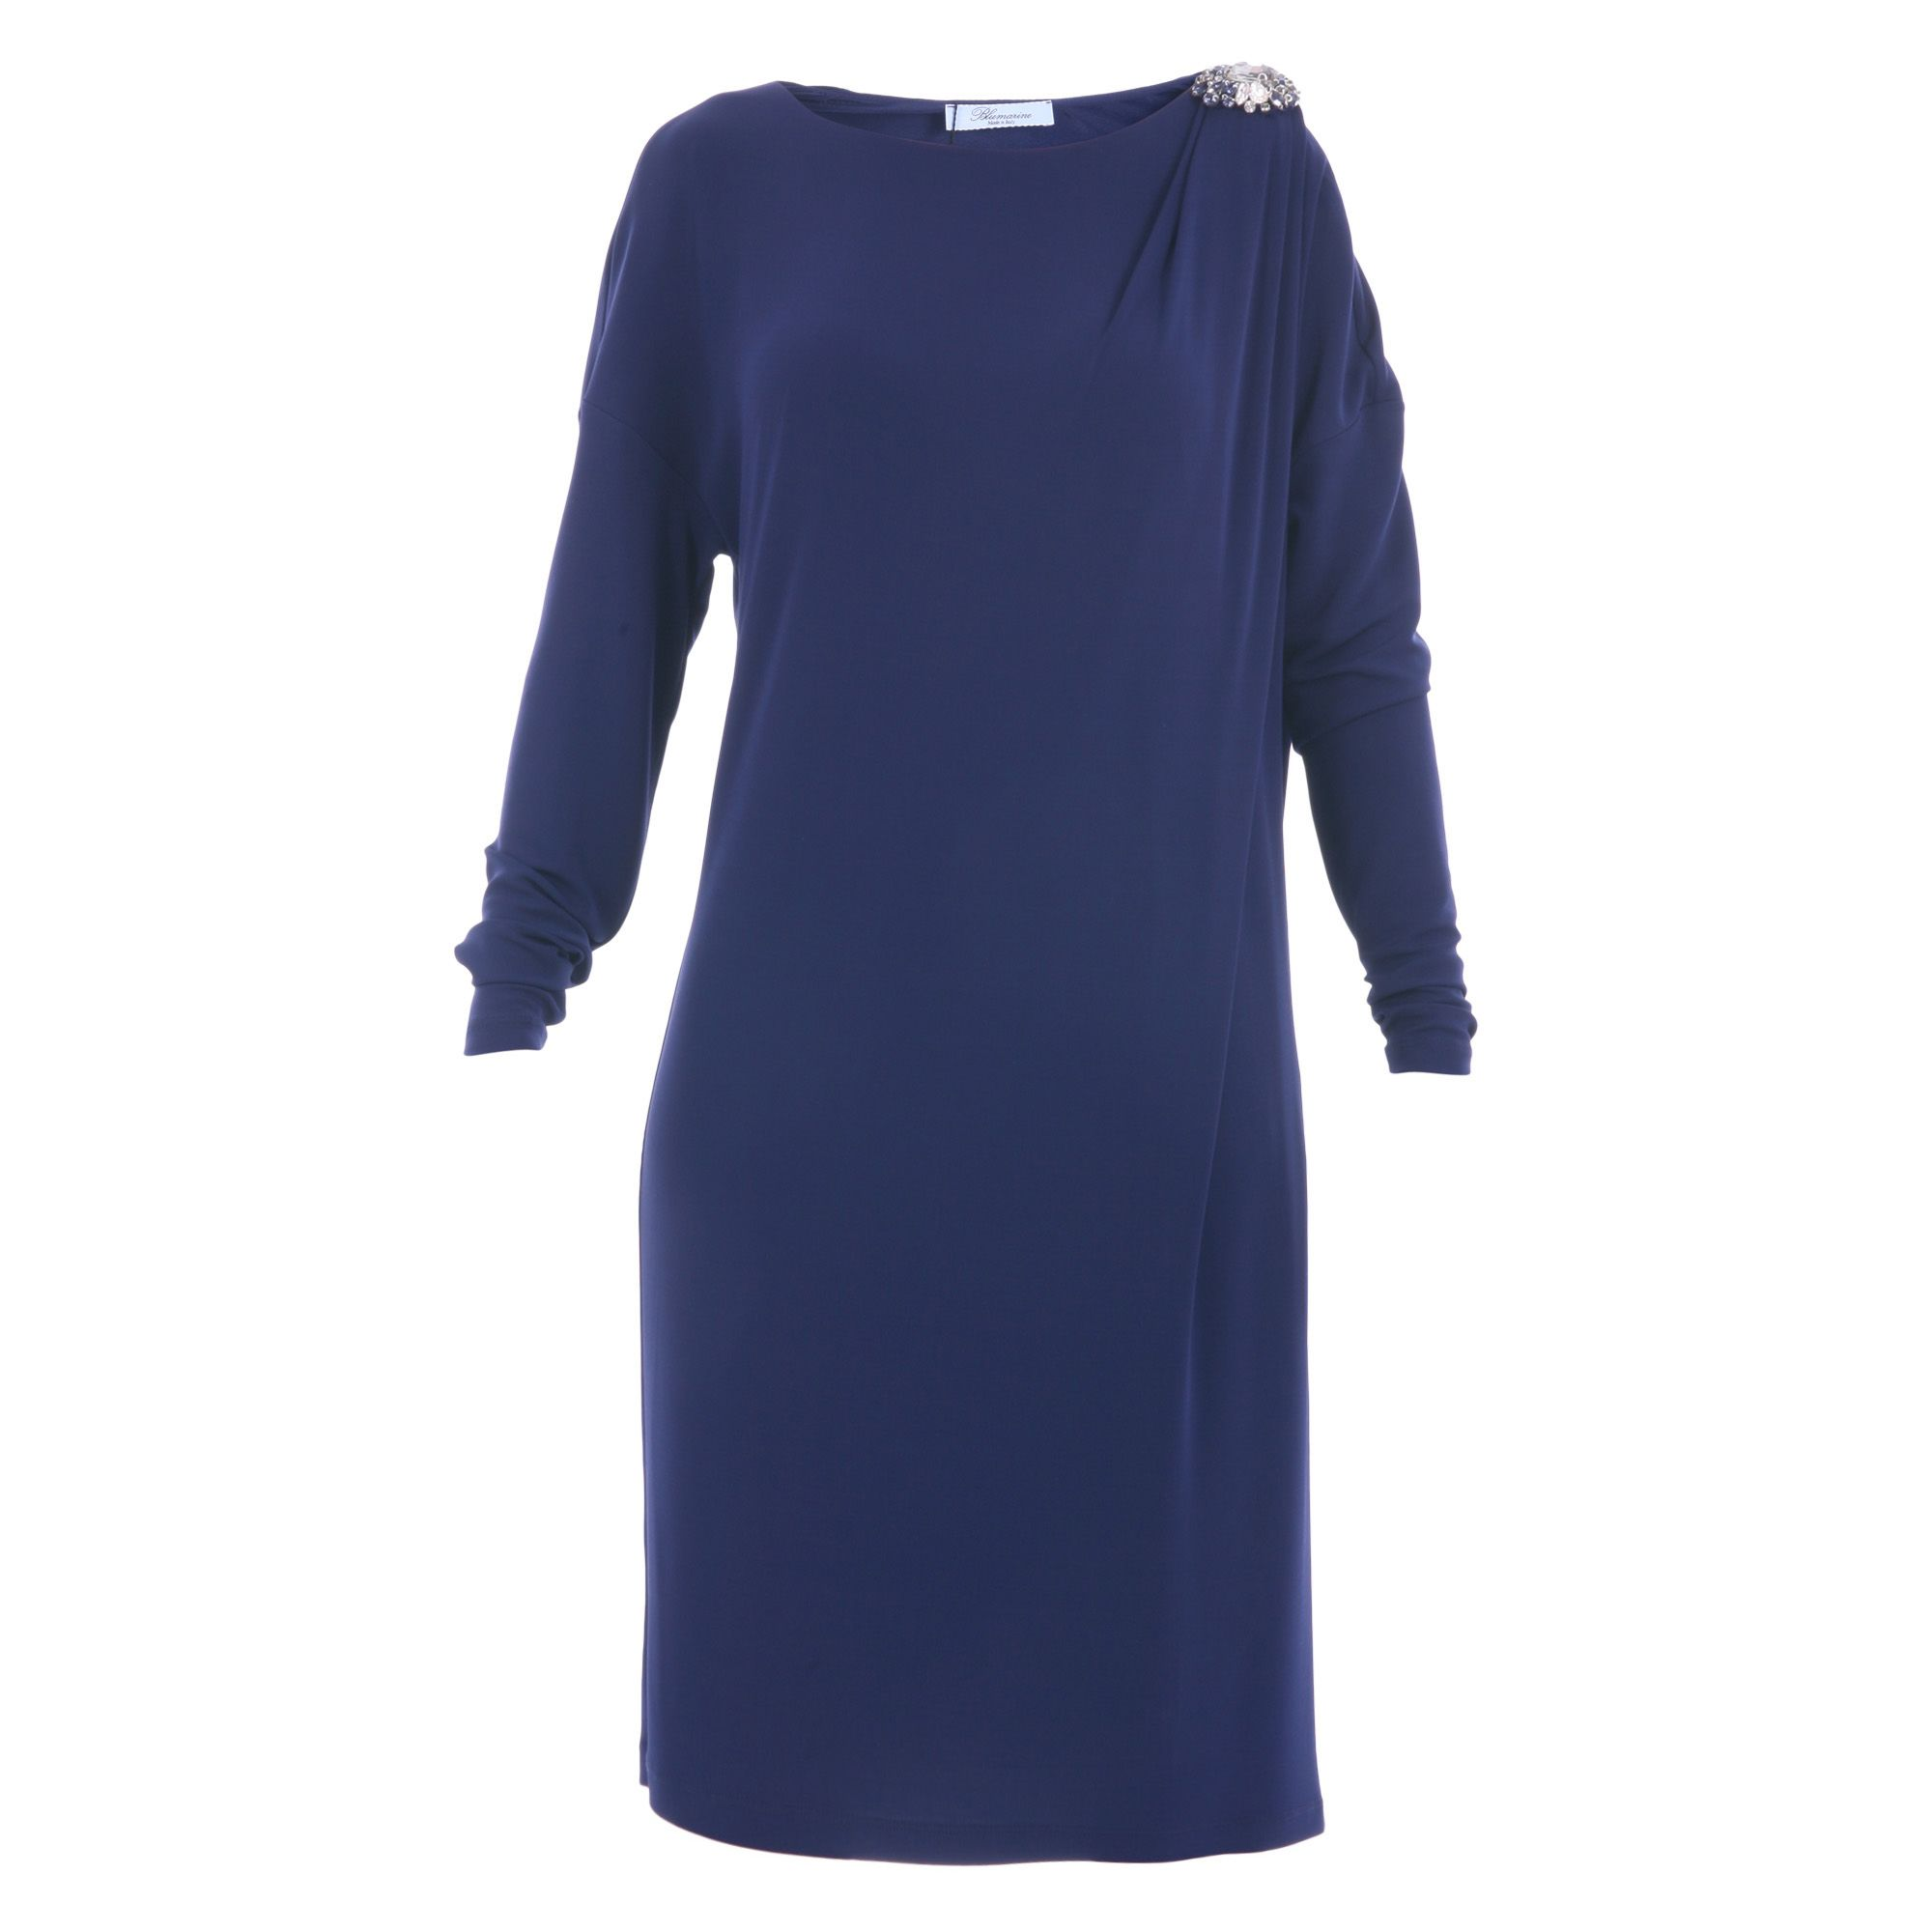 Blumarine Viscose Jersey Lined Dress